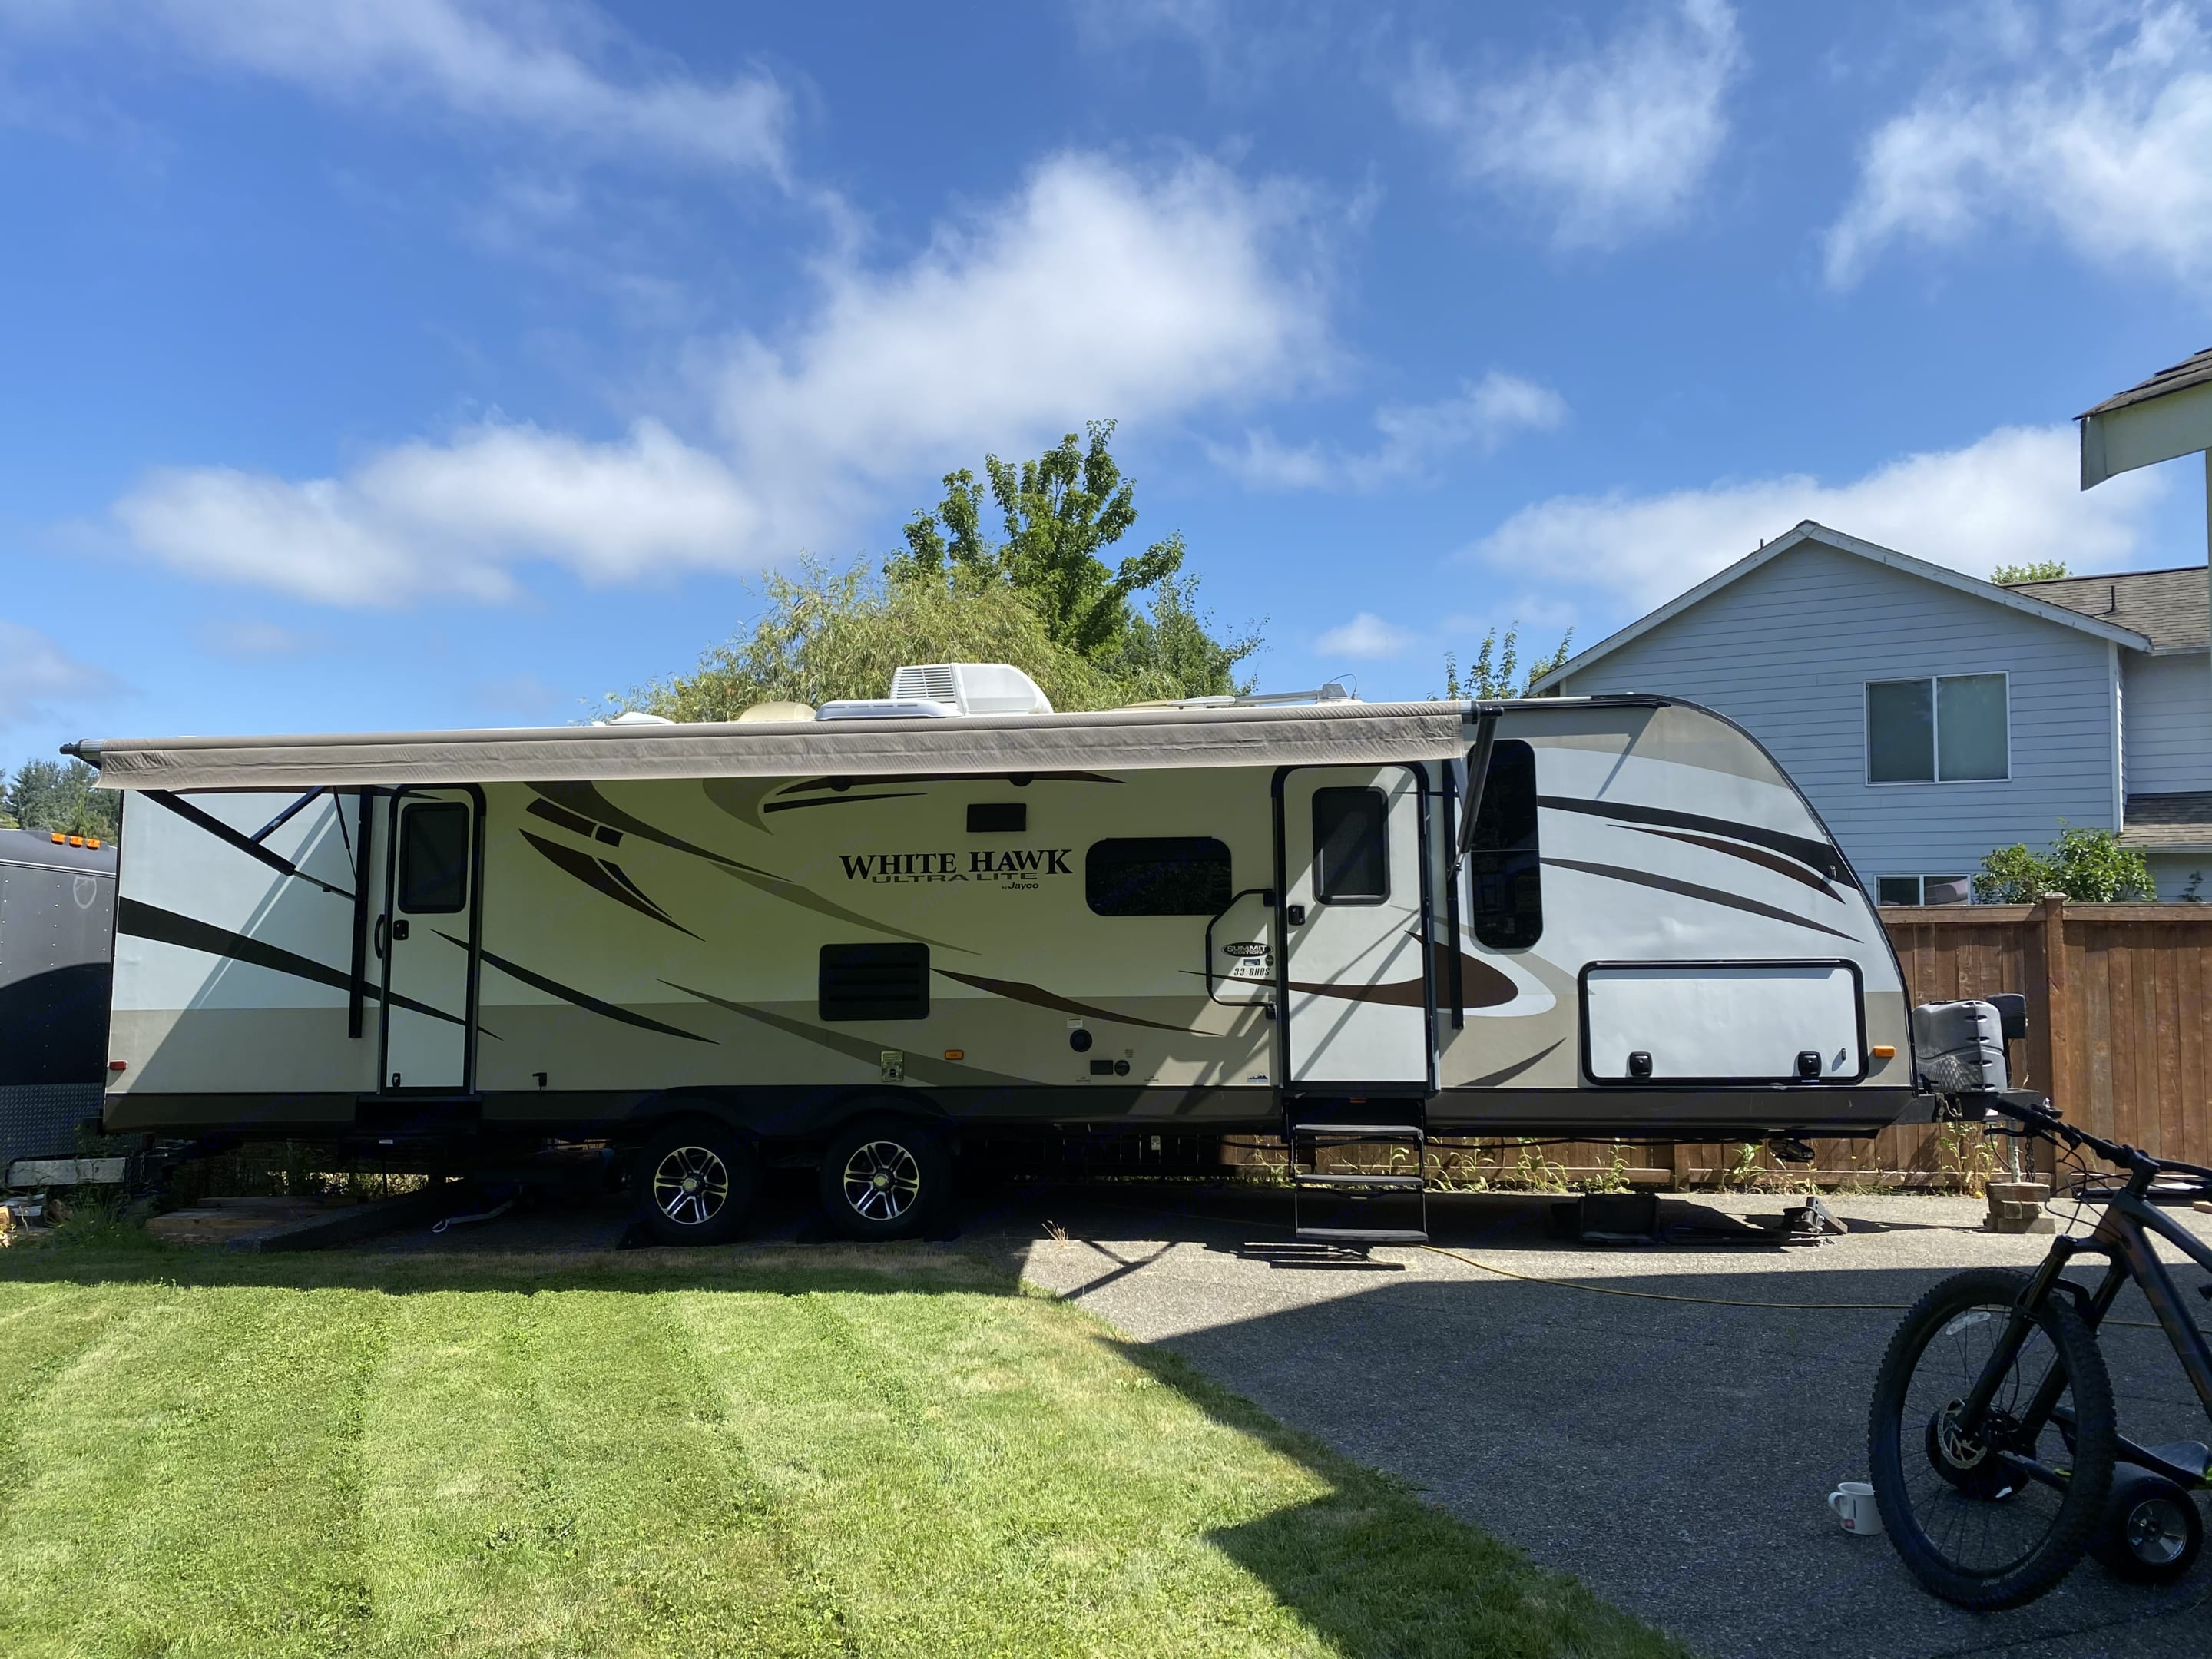 Beautifully maintained front of trailer with awning out. Has LED lights for night time.. Jayco White Hawk Ultra Lite 2015